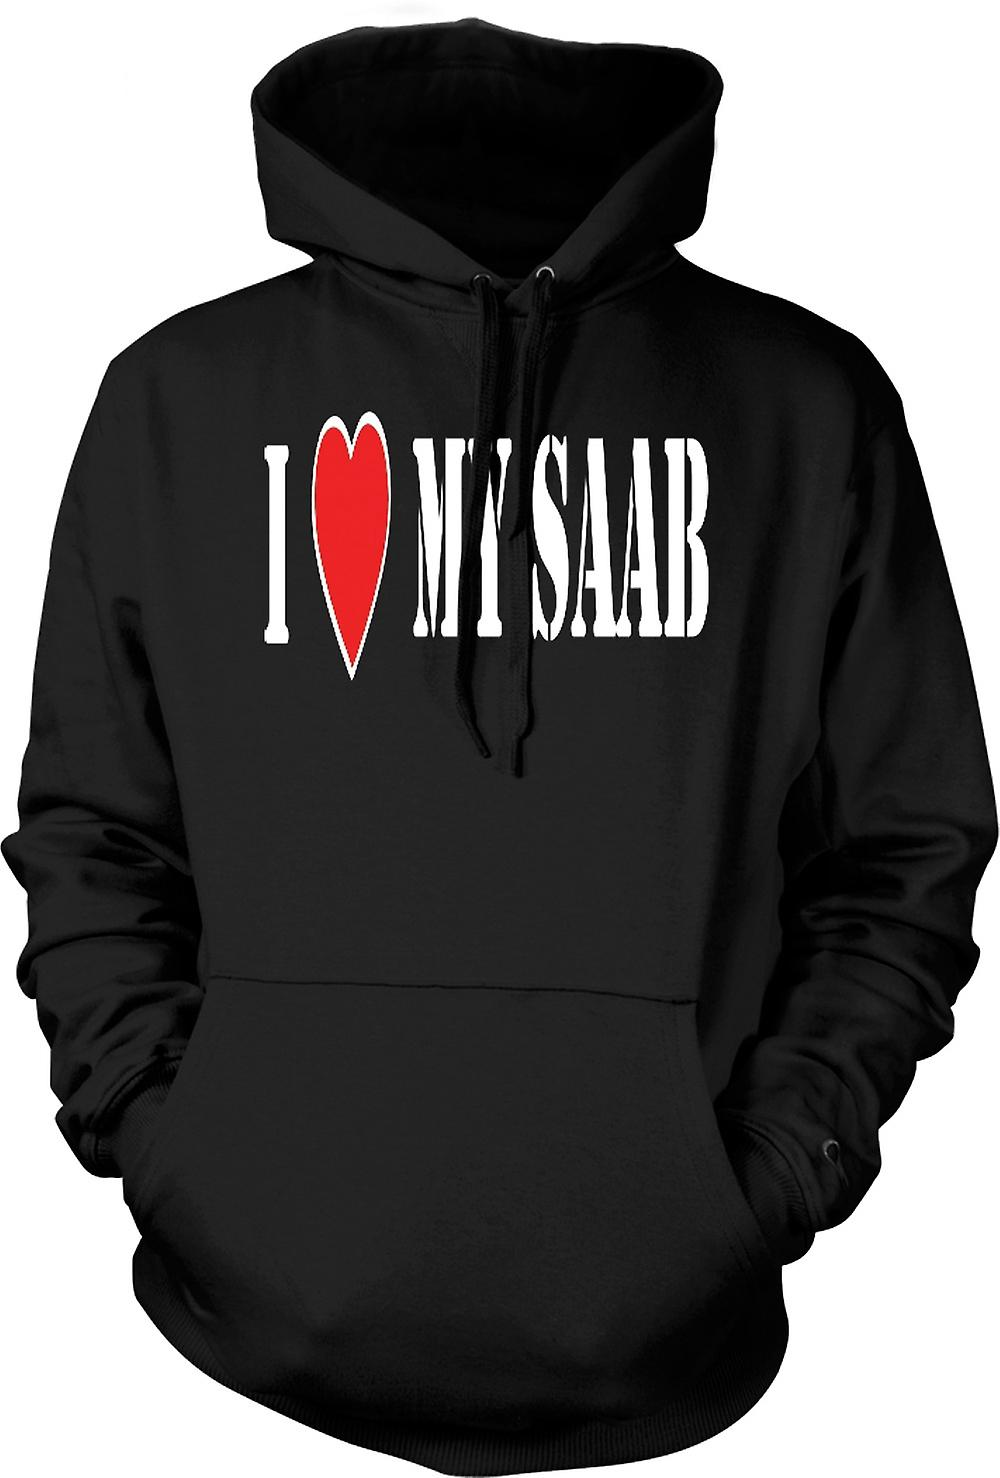 Mens Hoodie - I LoveMy Saab - Fun Car